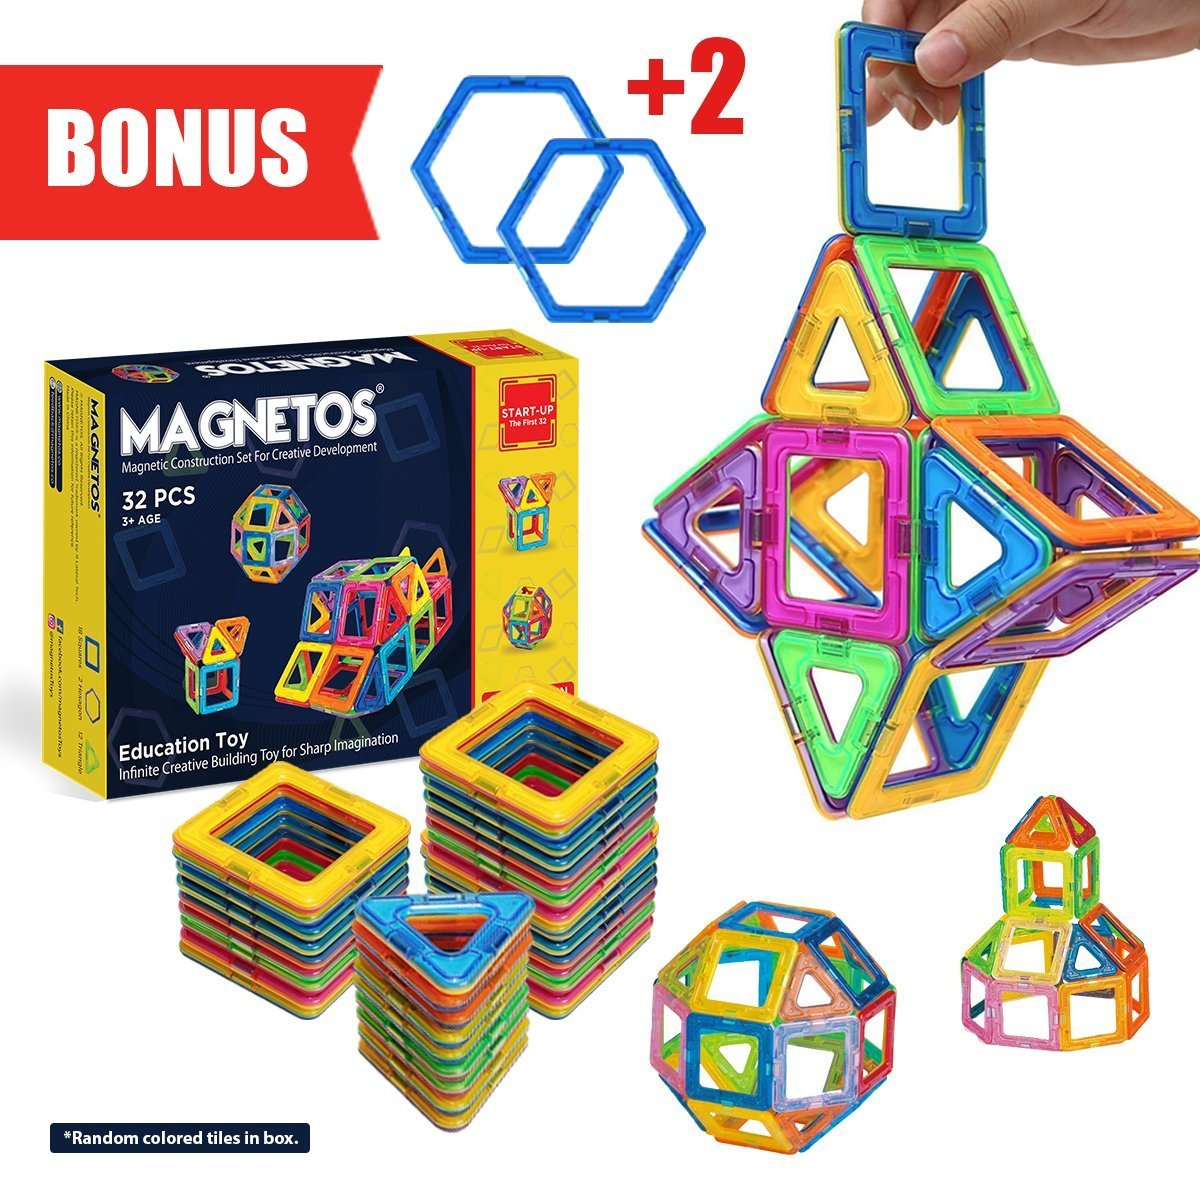 Magnetic Blocks Building Set for Kids, 30+2 Pcs Educational Toys for Boys & Girls, FREE Booklet, Learning Construction Game, Best Christmas Birthday Gift & Preschool Indoor Toy for Childrens Review